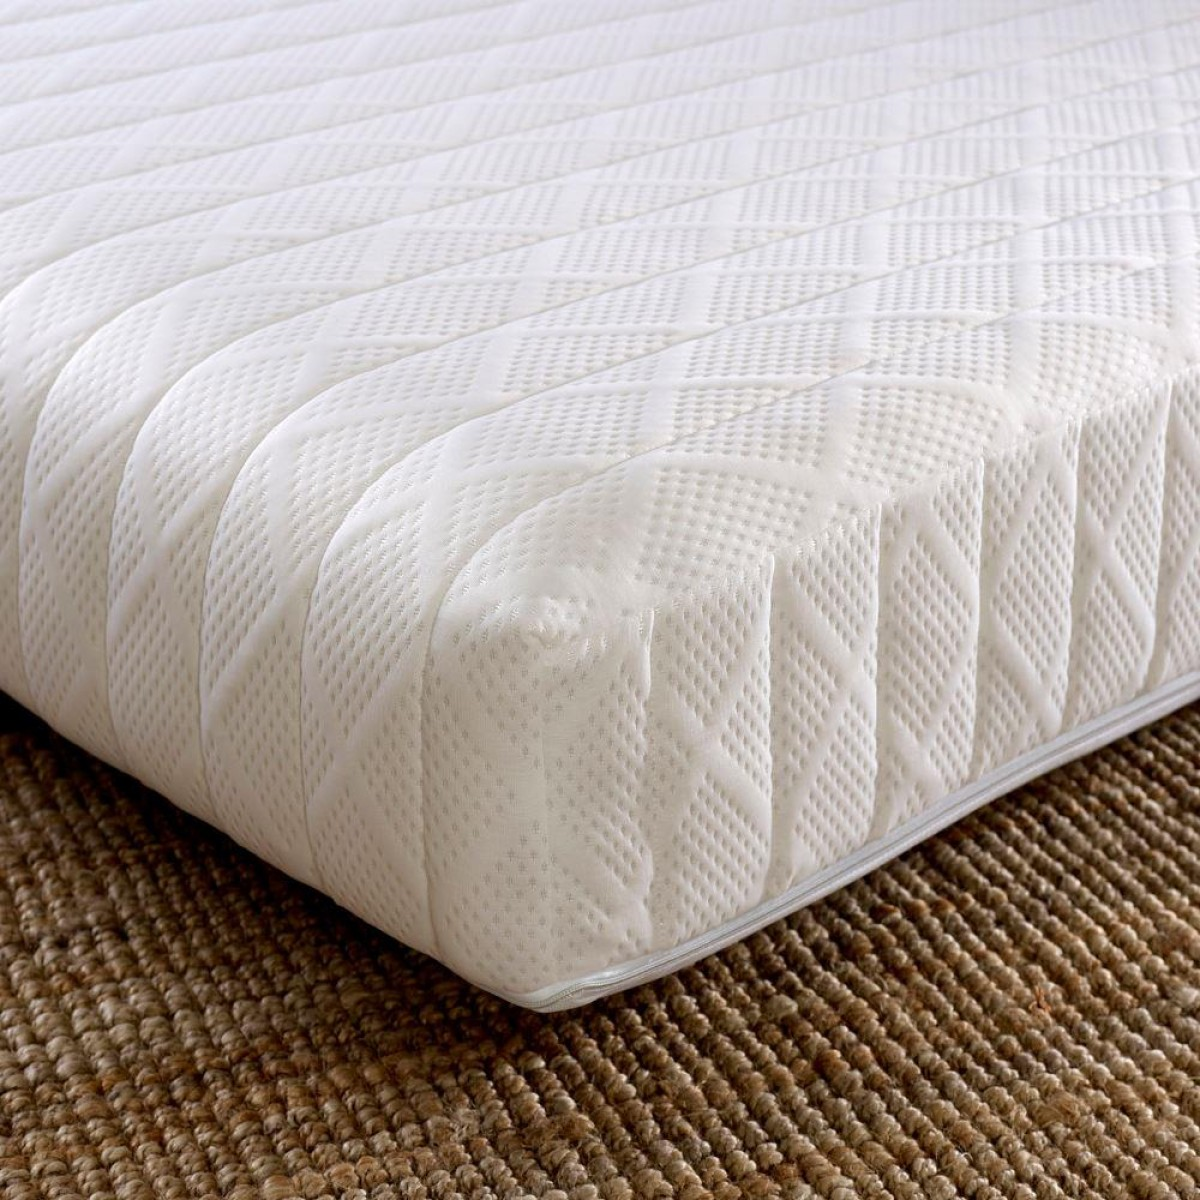 Flex 1000 Reflex Foam Orthopaedic Mattress